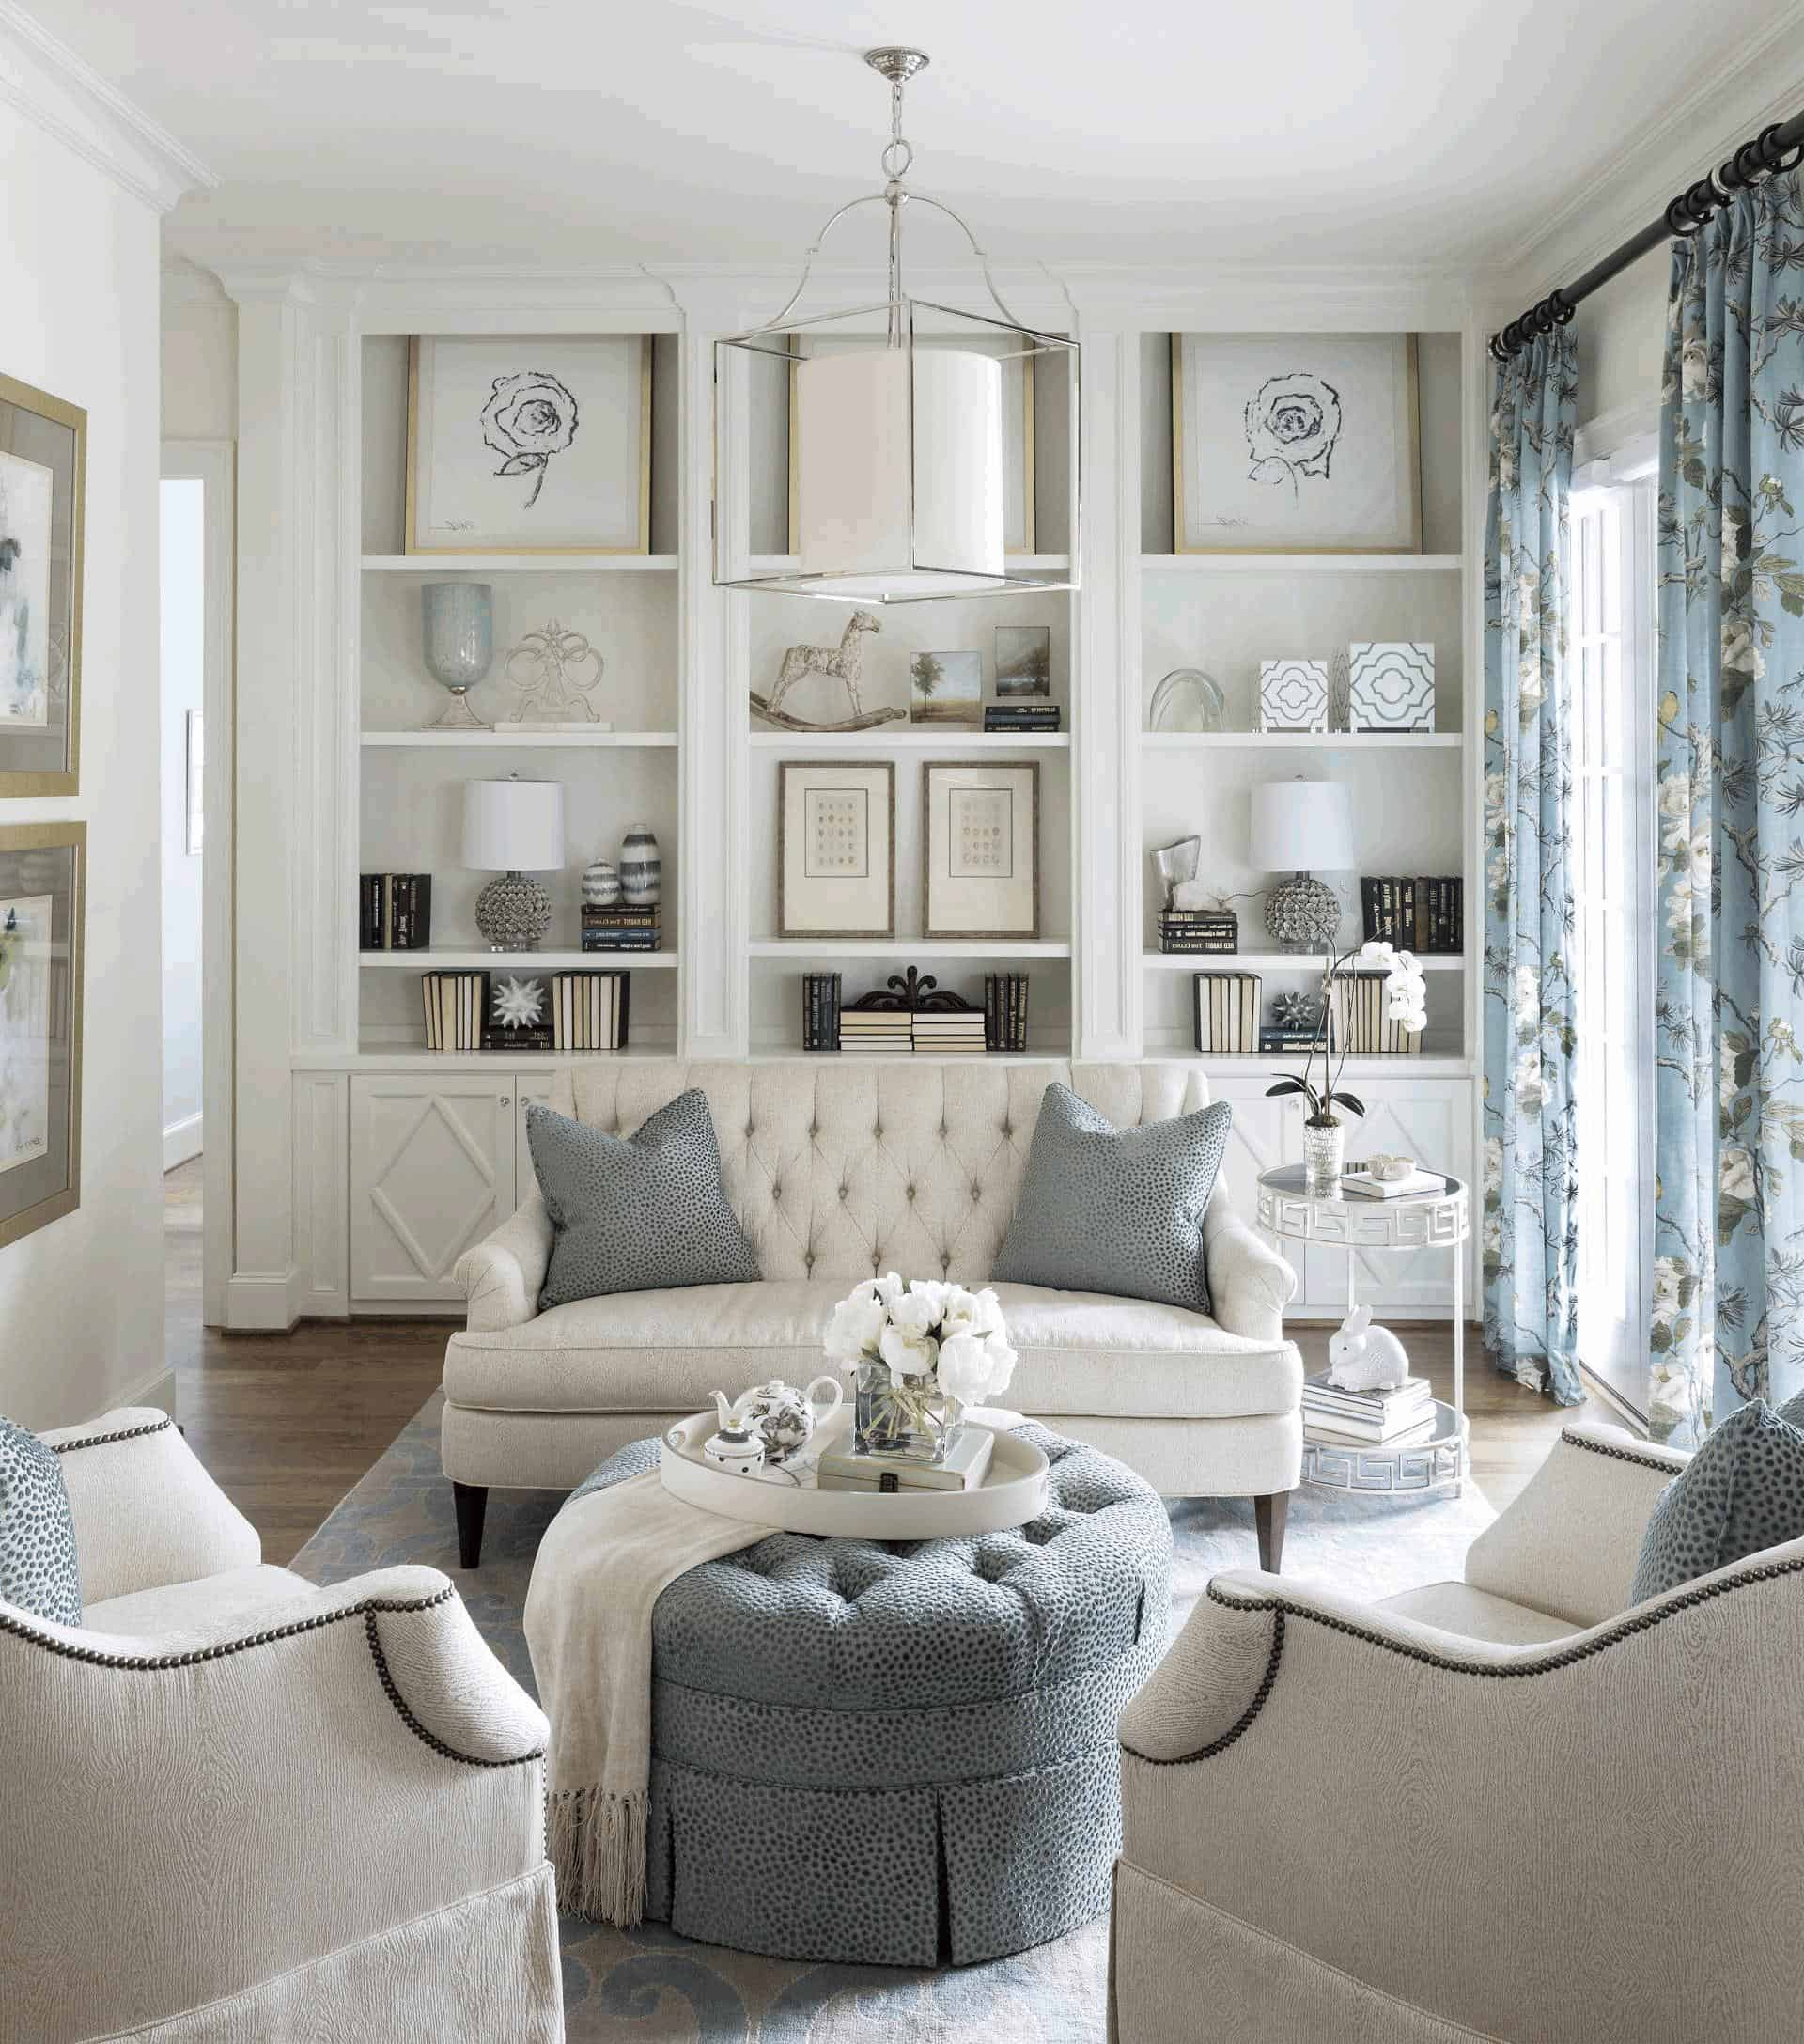 Living Room Furniture Ideas: 12 Lovely White Living Room Furniture Ideas